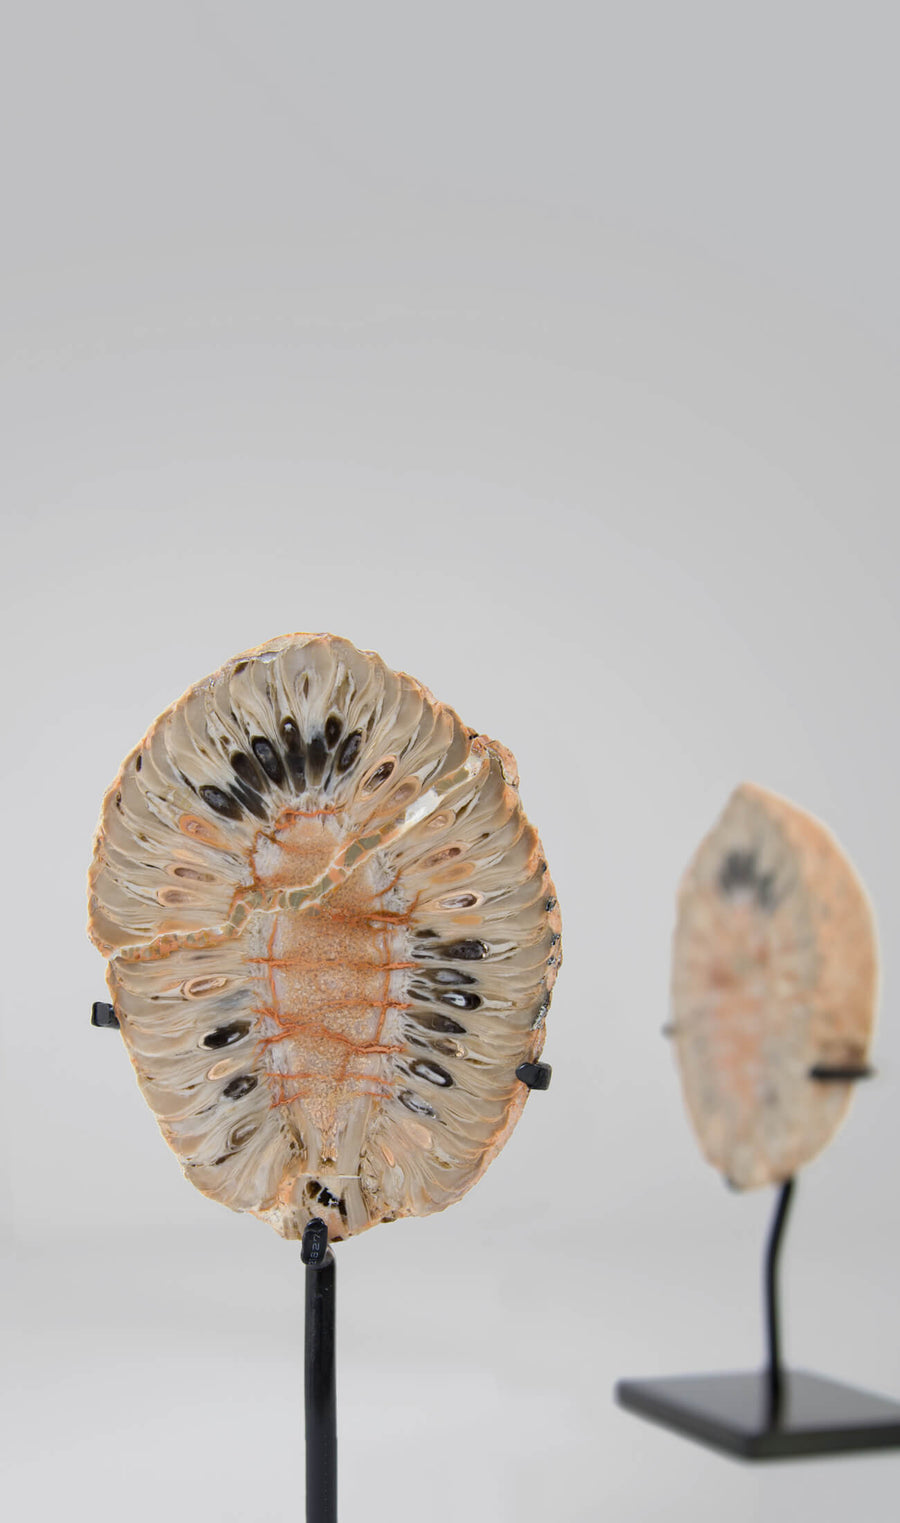 Introducing an extraordinary fir cone cut in two to reveal the delicate internal morphology that now shows the exterior ovule patterns within which once pollinated, develop into seeds.